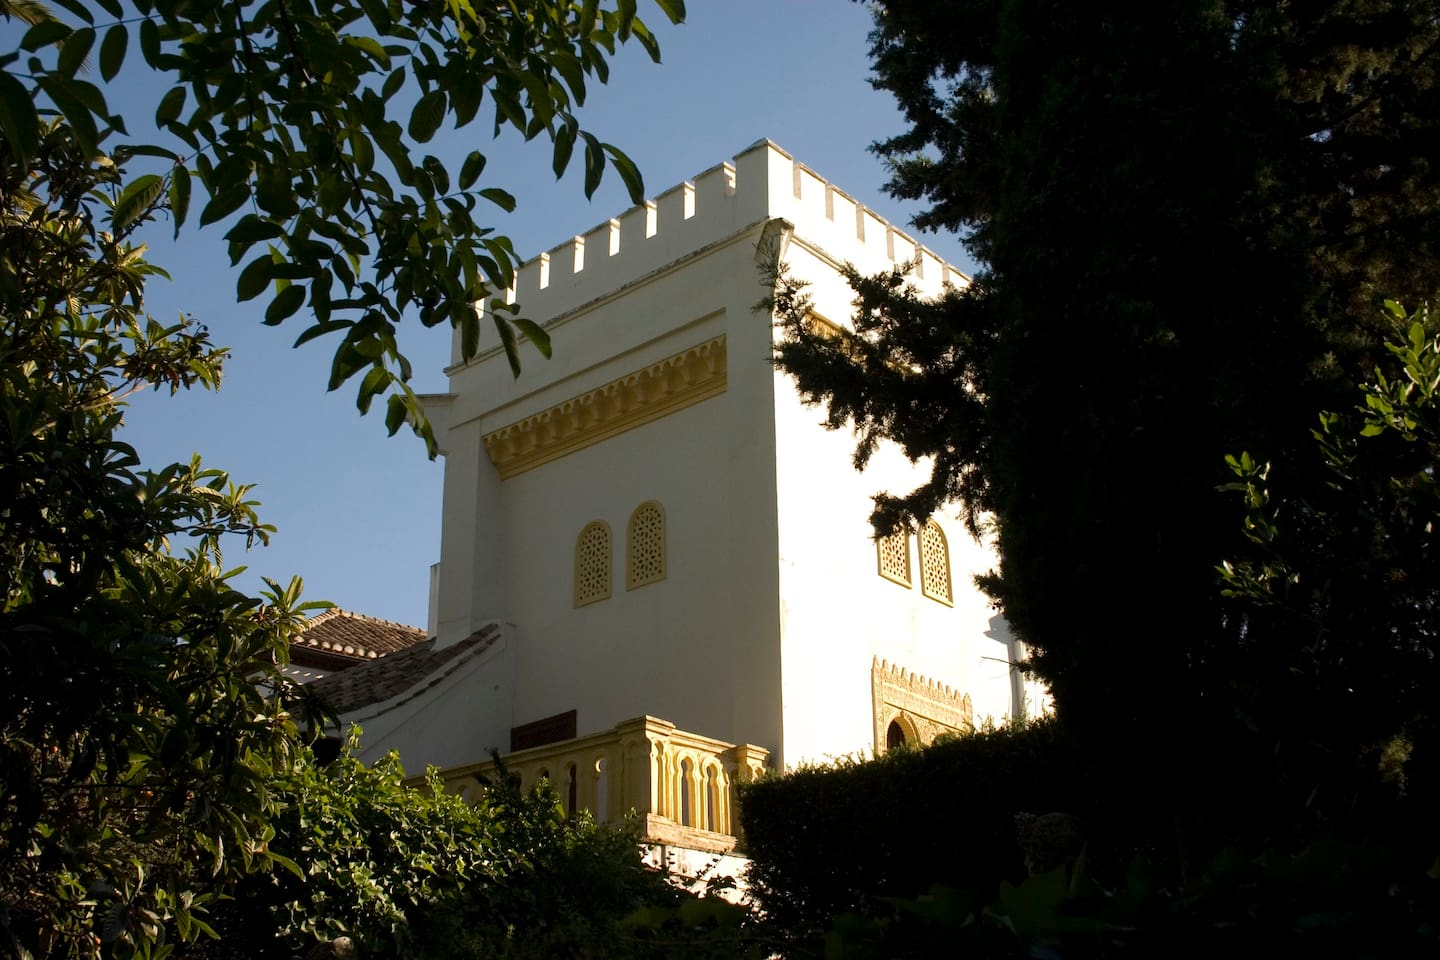 View of the property from the garden